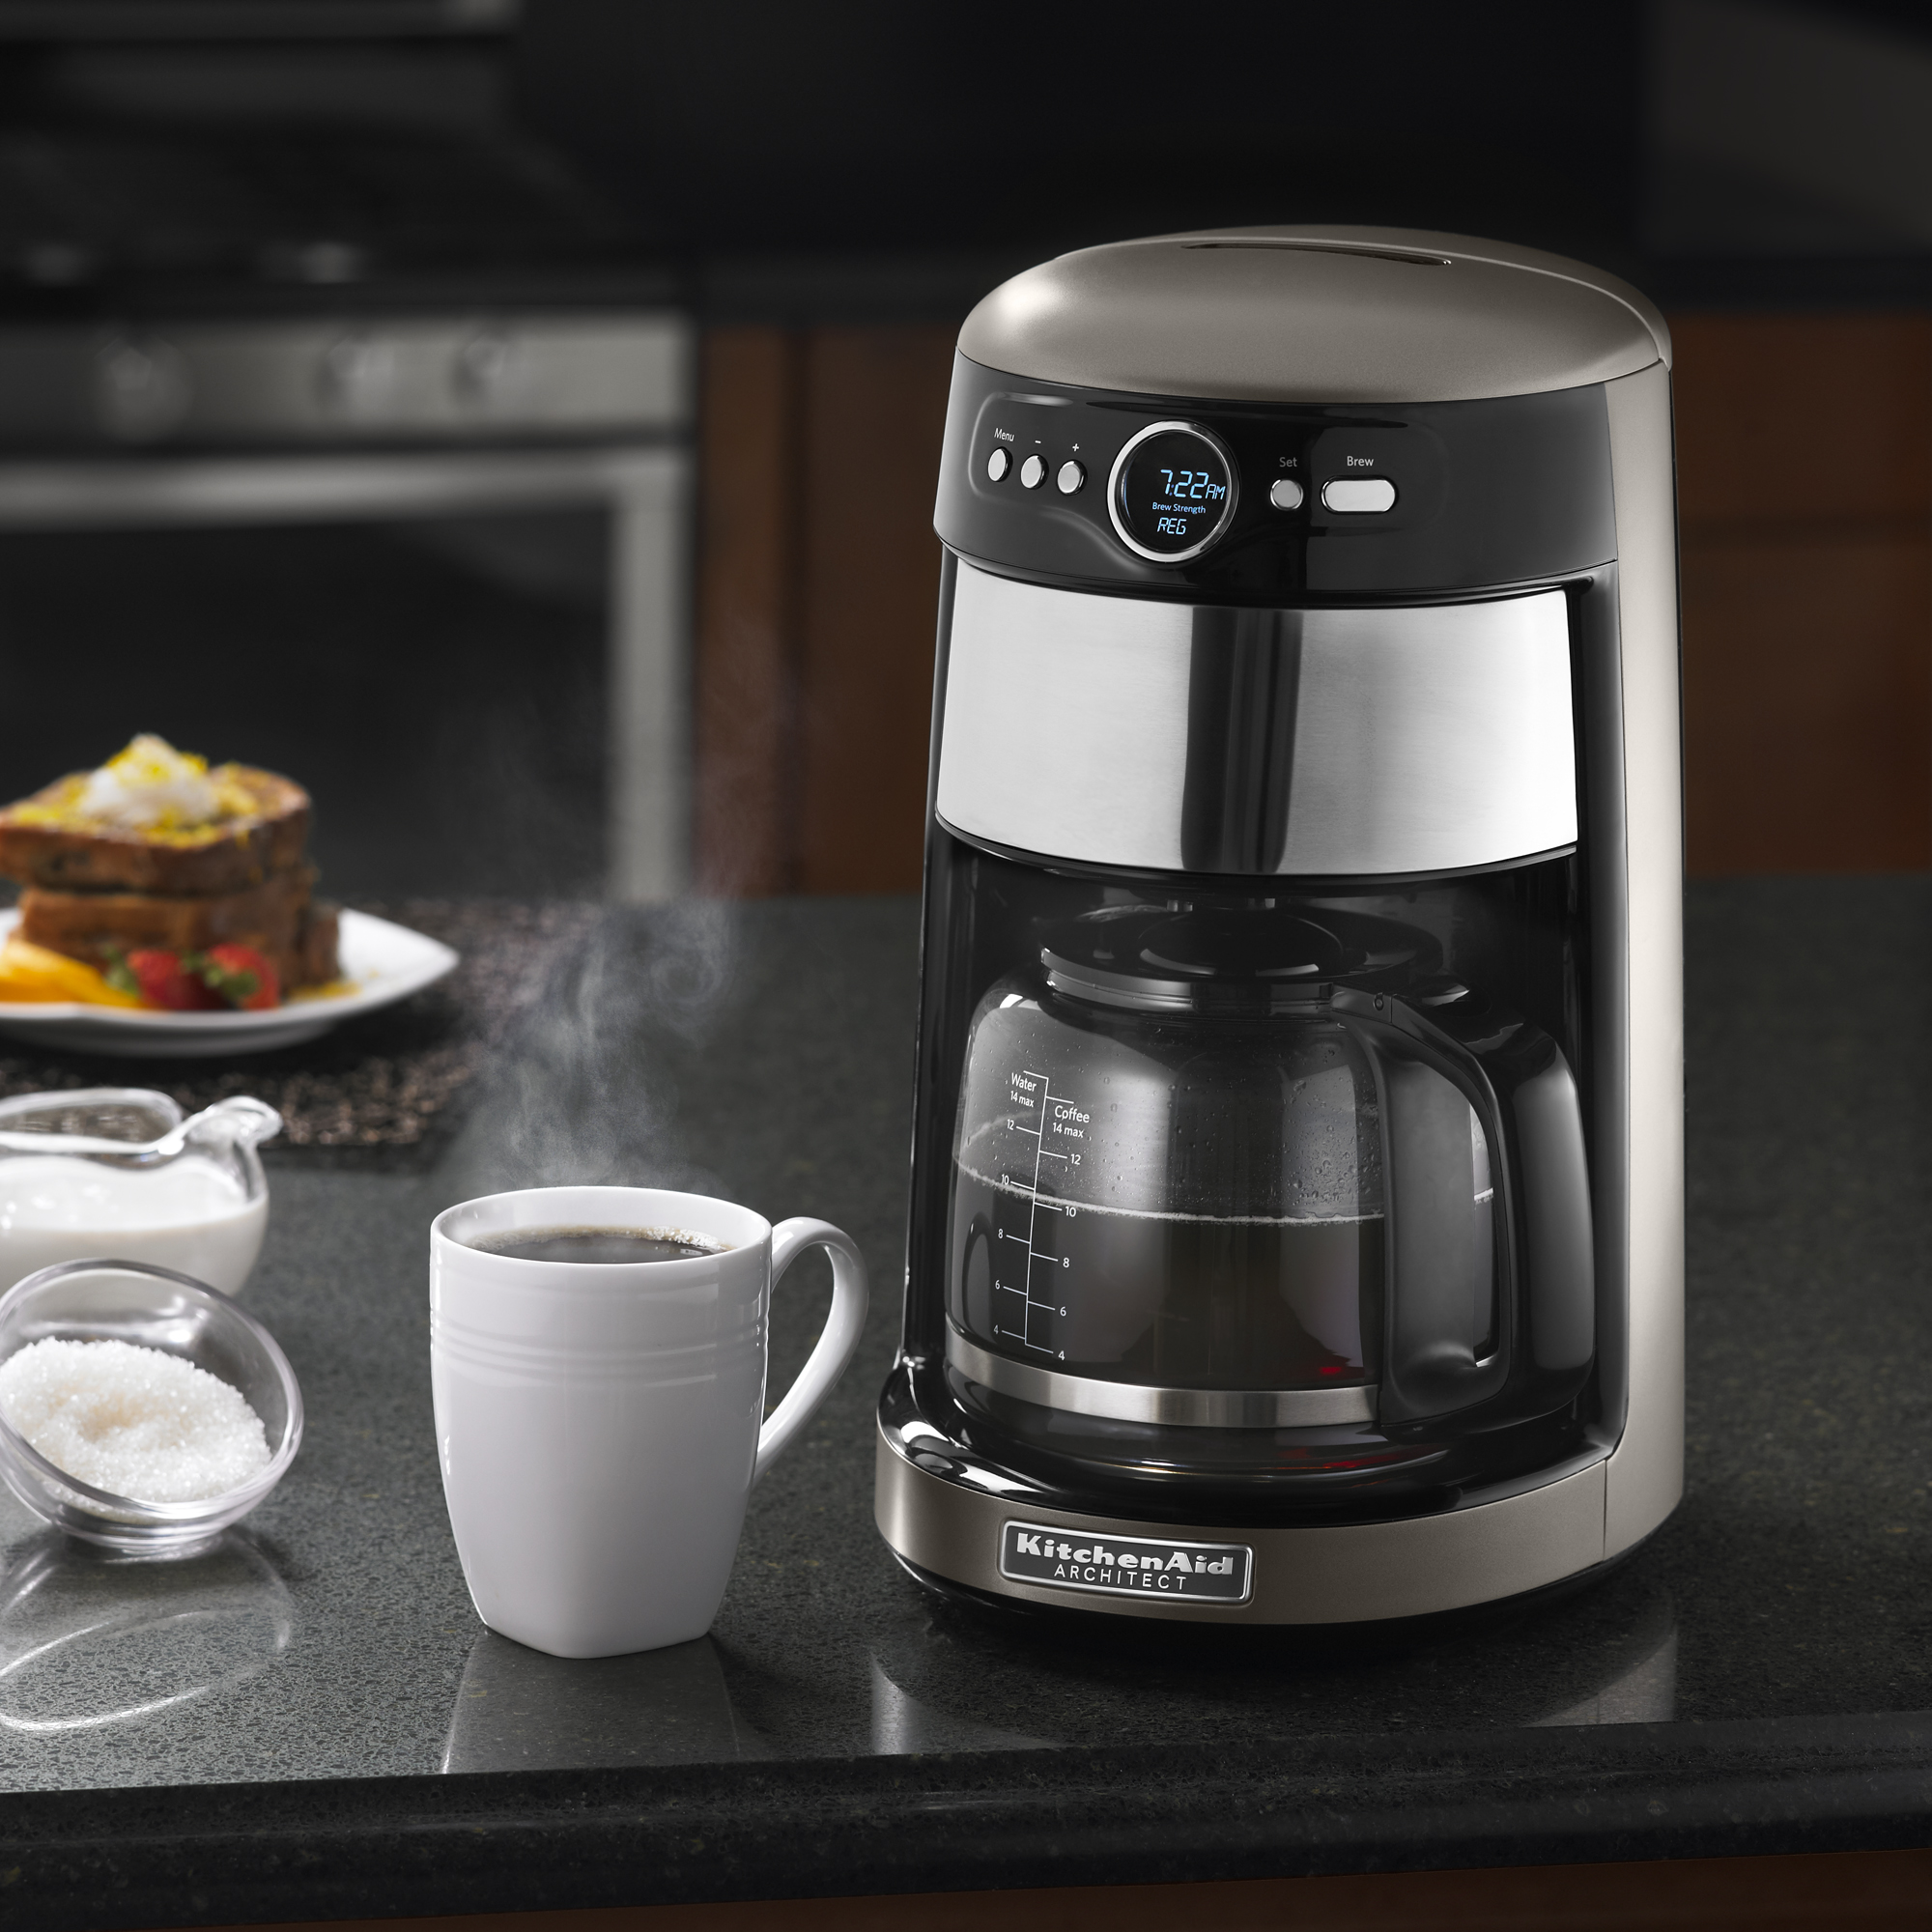 Details about KitchenAid® Refurbished 14 Cup Coffee Maker, RKCM1402